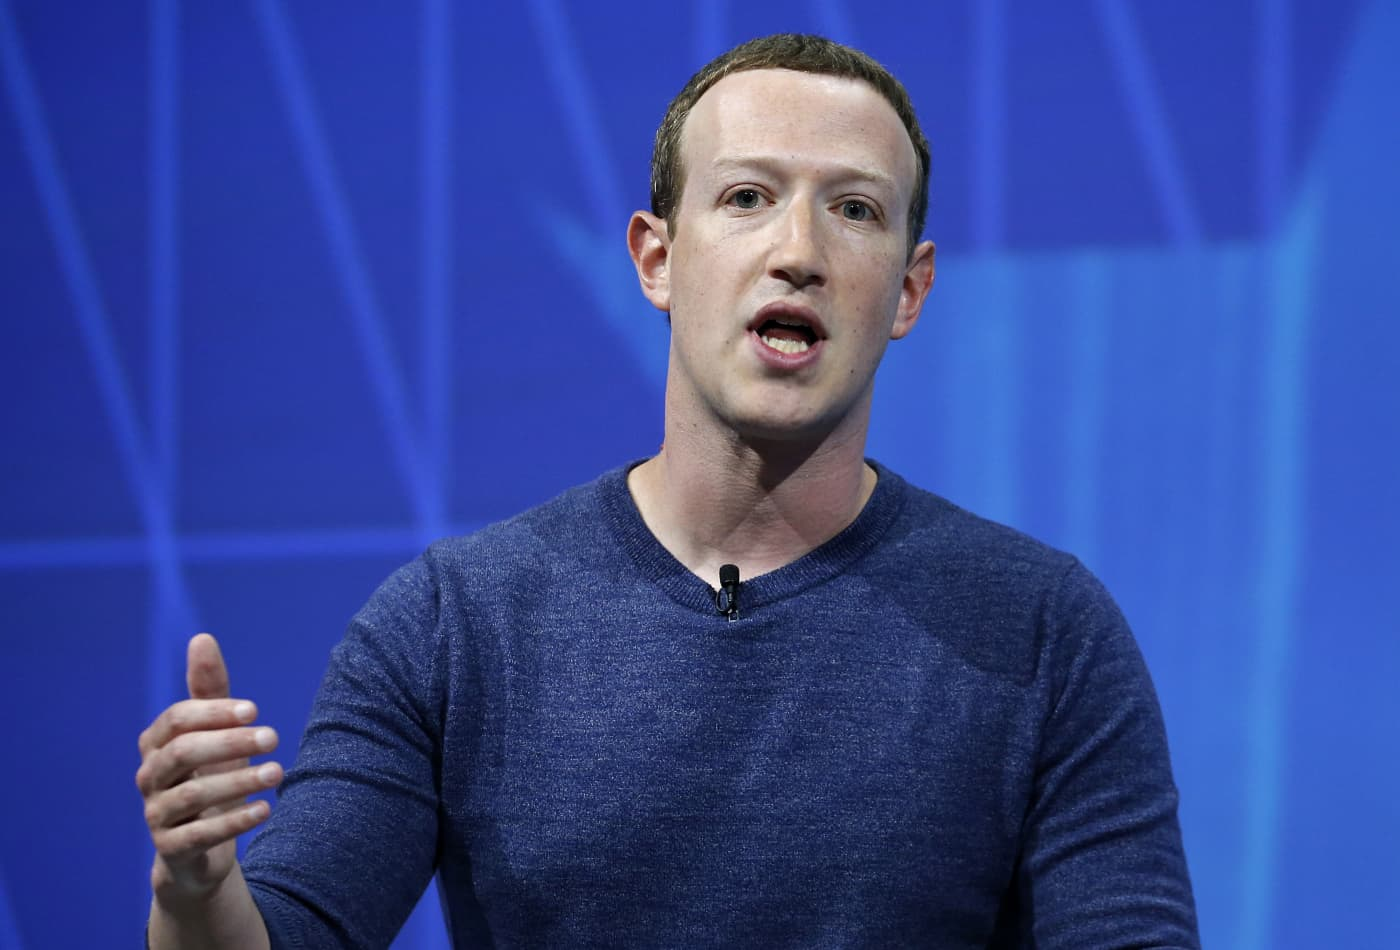 Facebook rejects Biden campaign's request to remove Trump ads containing false information